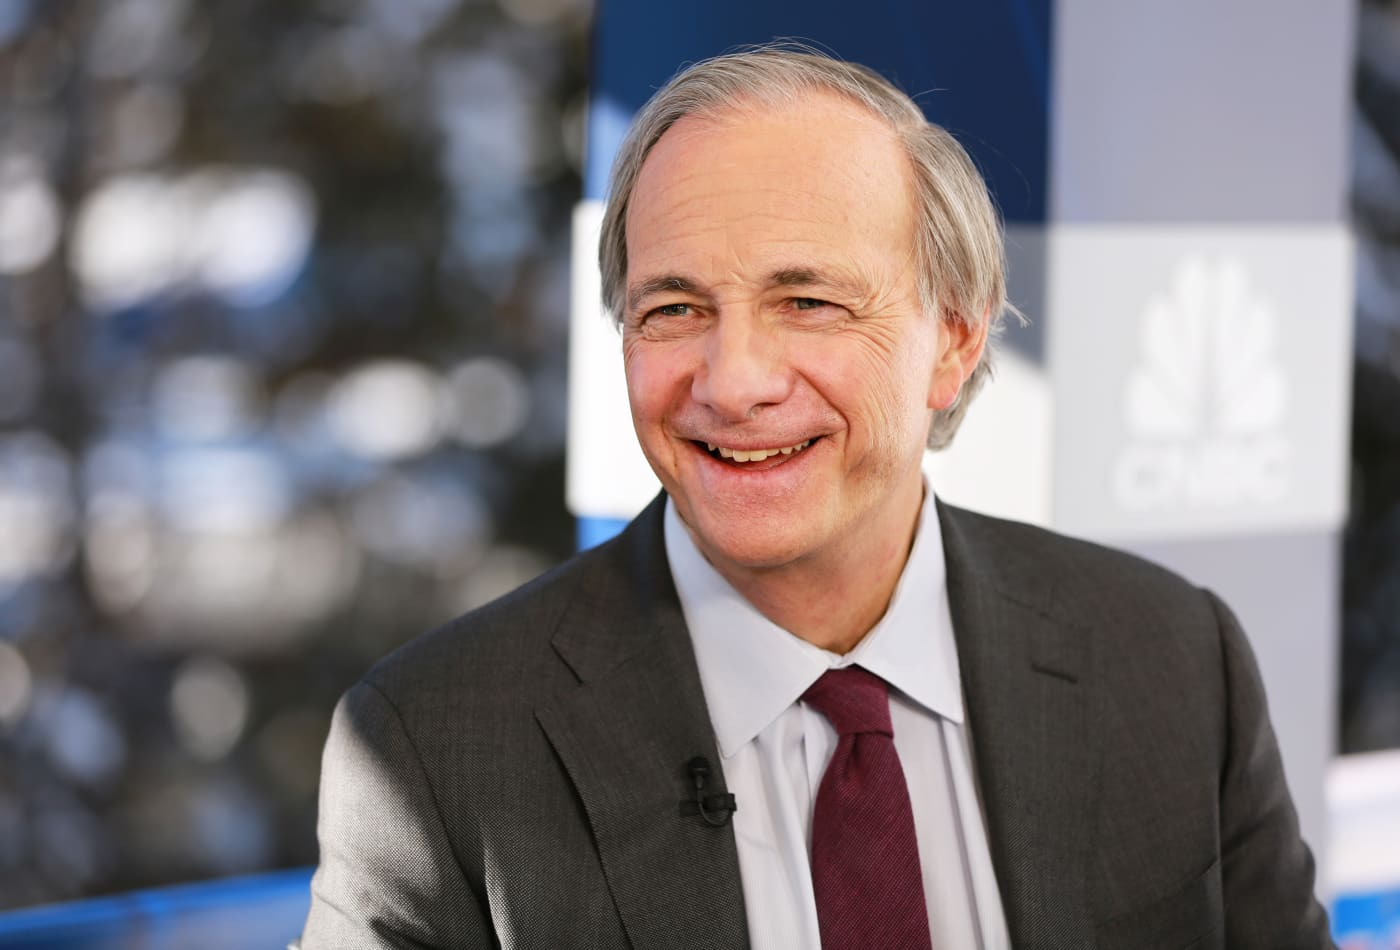 Billionaire Ray Dalio bought his first stock at age 12